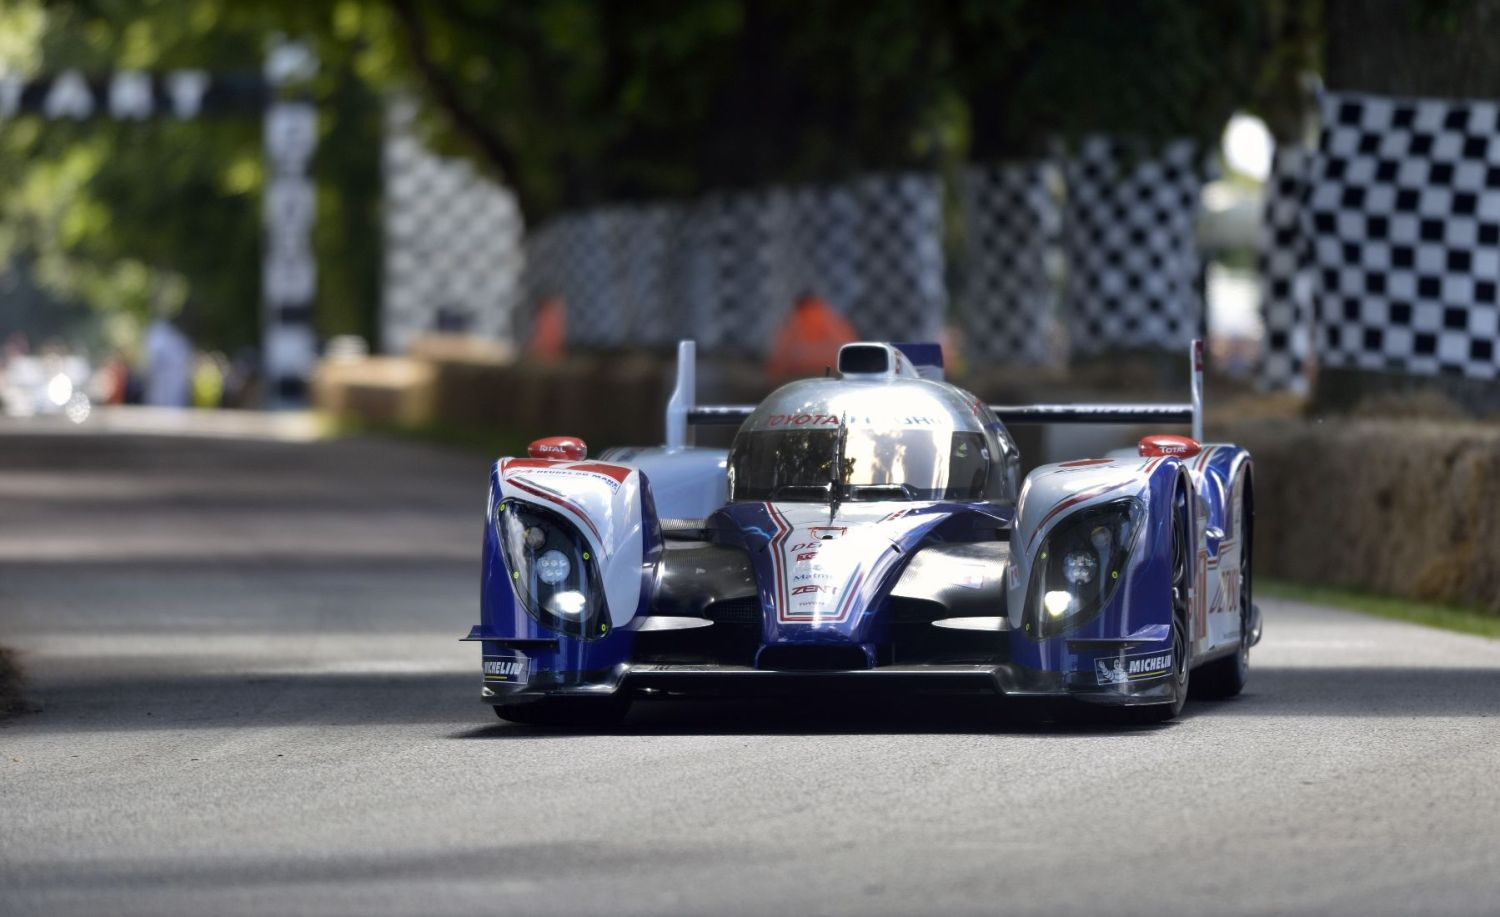 Le Mans Protoypes at Goodwood 77MM 77th Members' Meeting